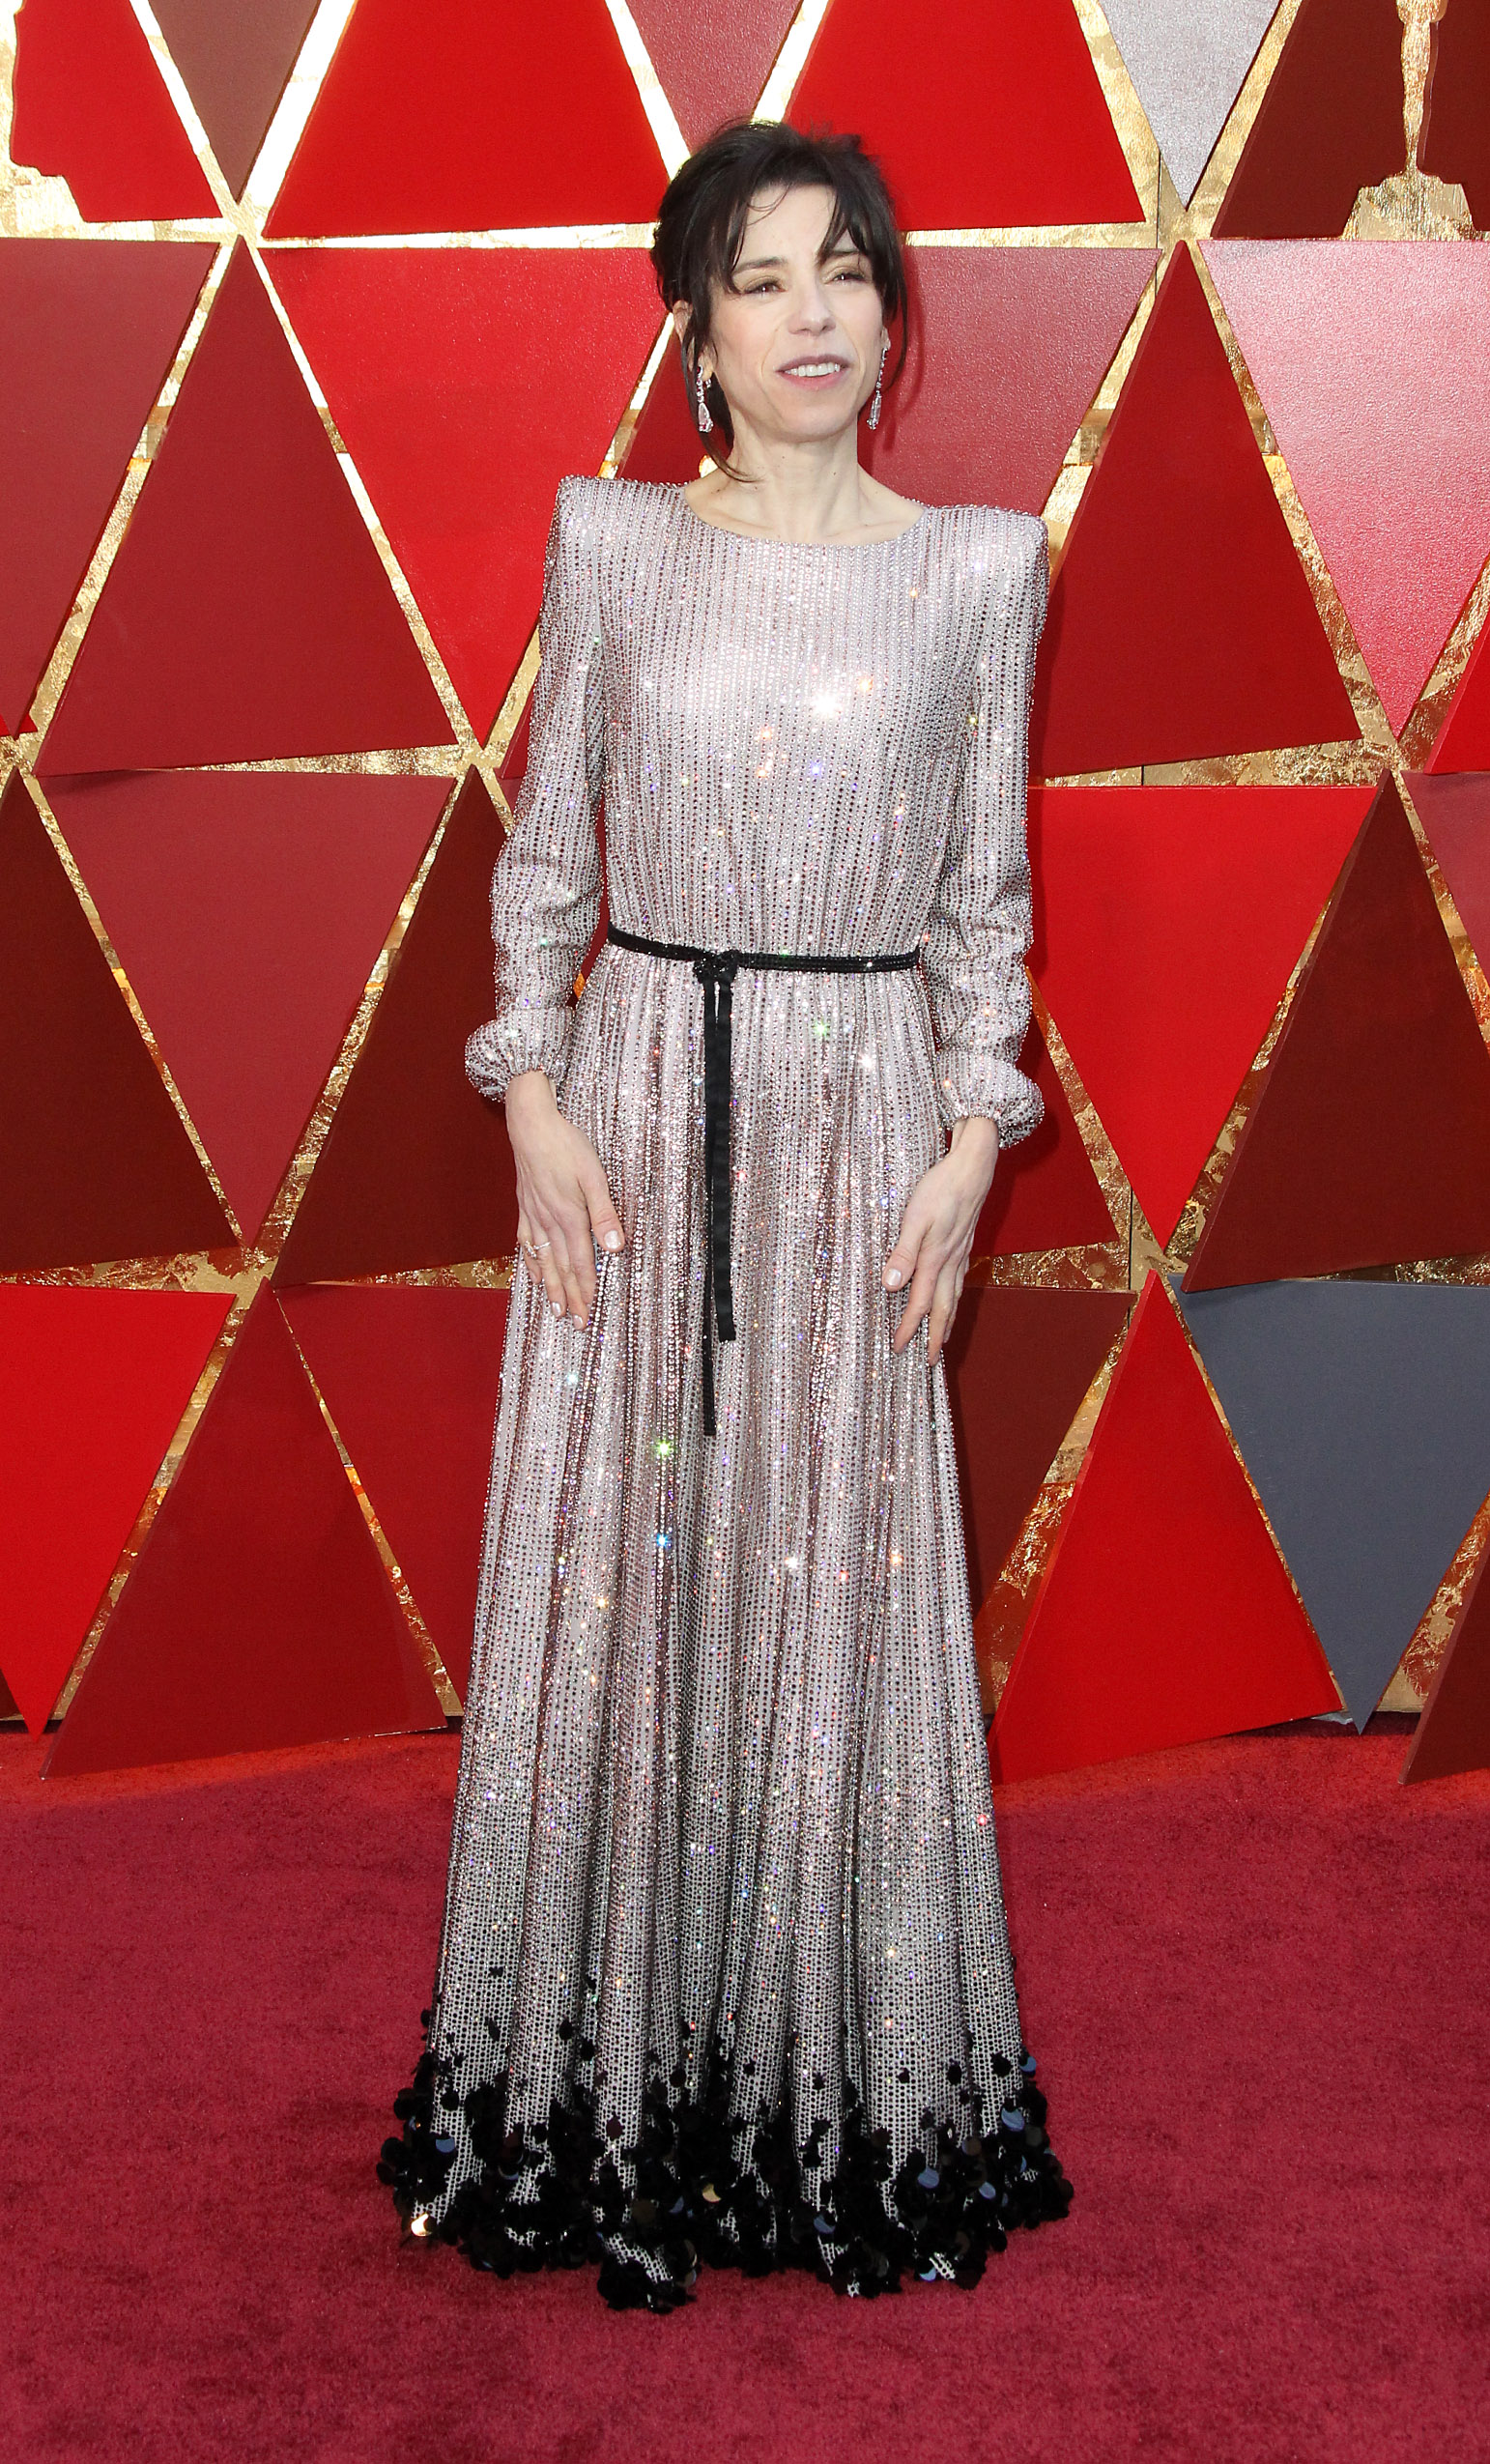 Sally Hawkins        arrives at the 90th Annual Academy Awards (Oscars) held at the Dolby Theater in Hollywood, California. (Image: Adriana M. Barraza/WENN.com)<p></p>